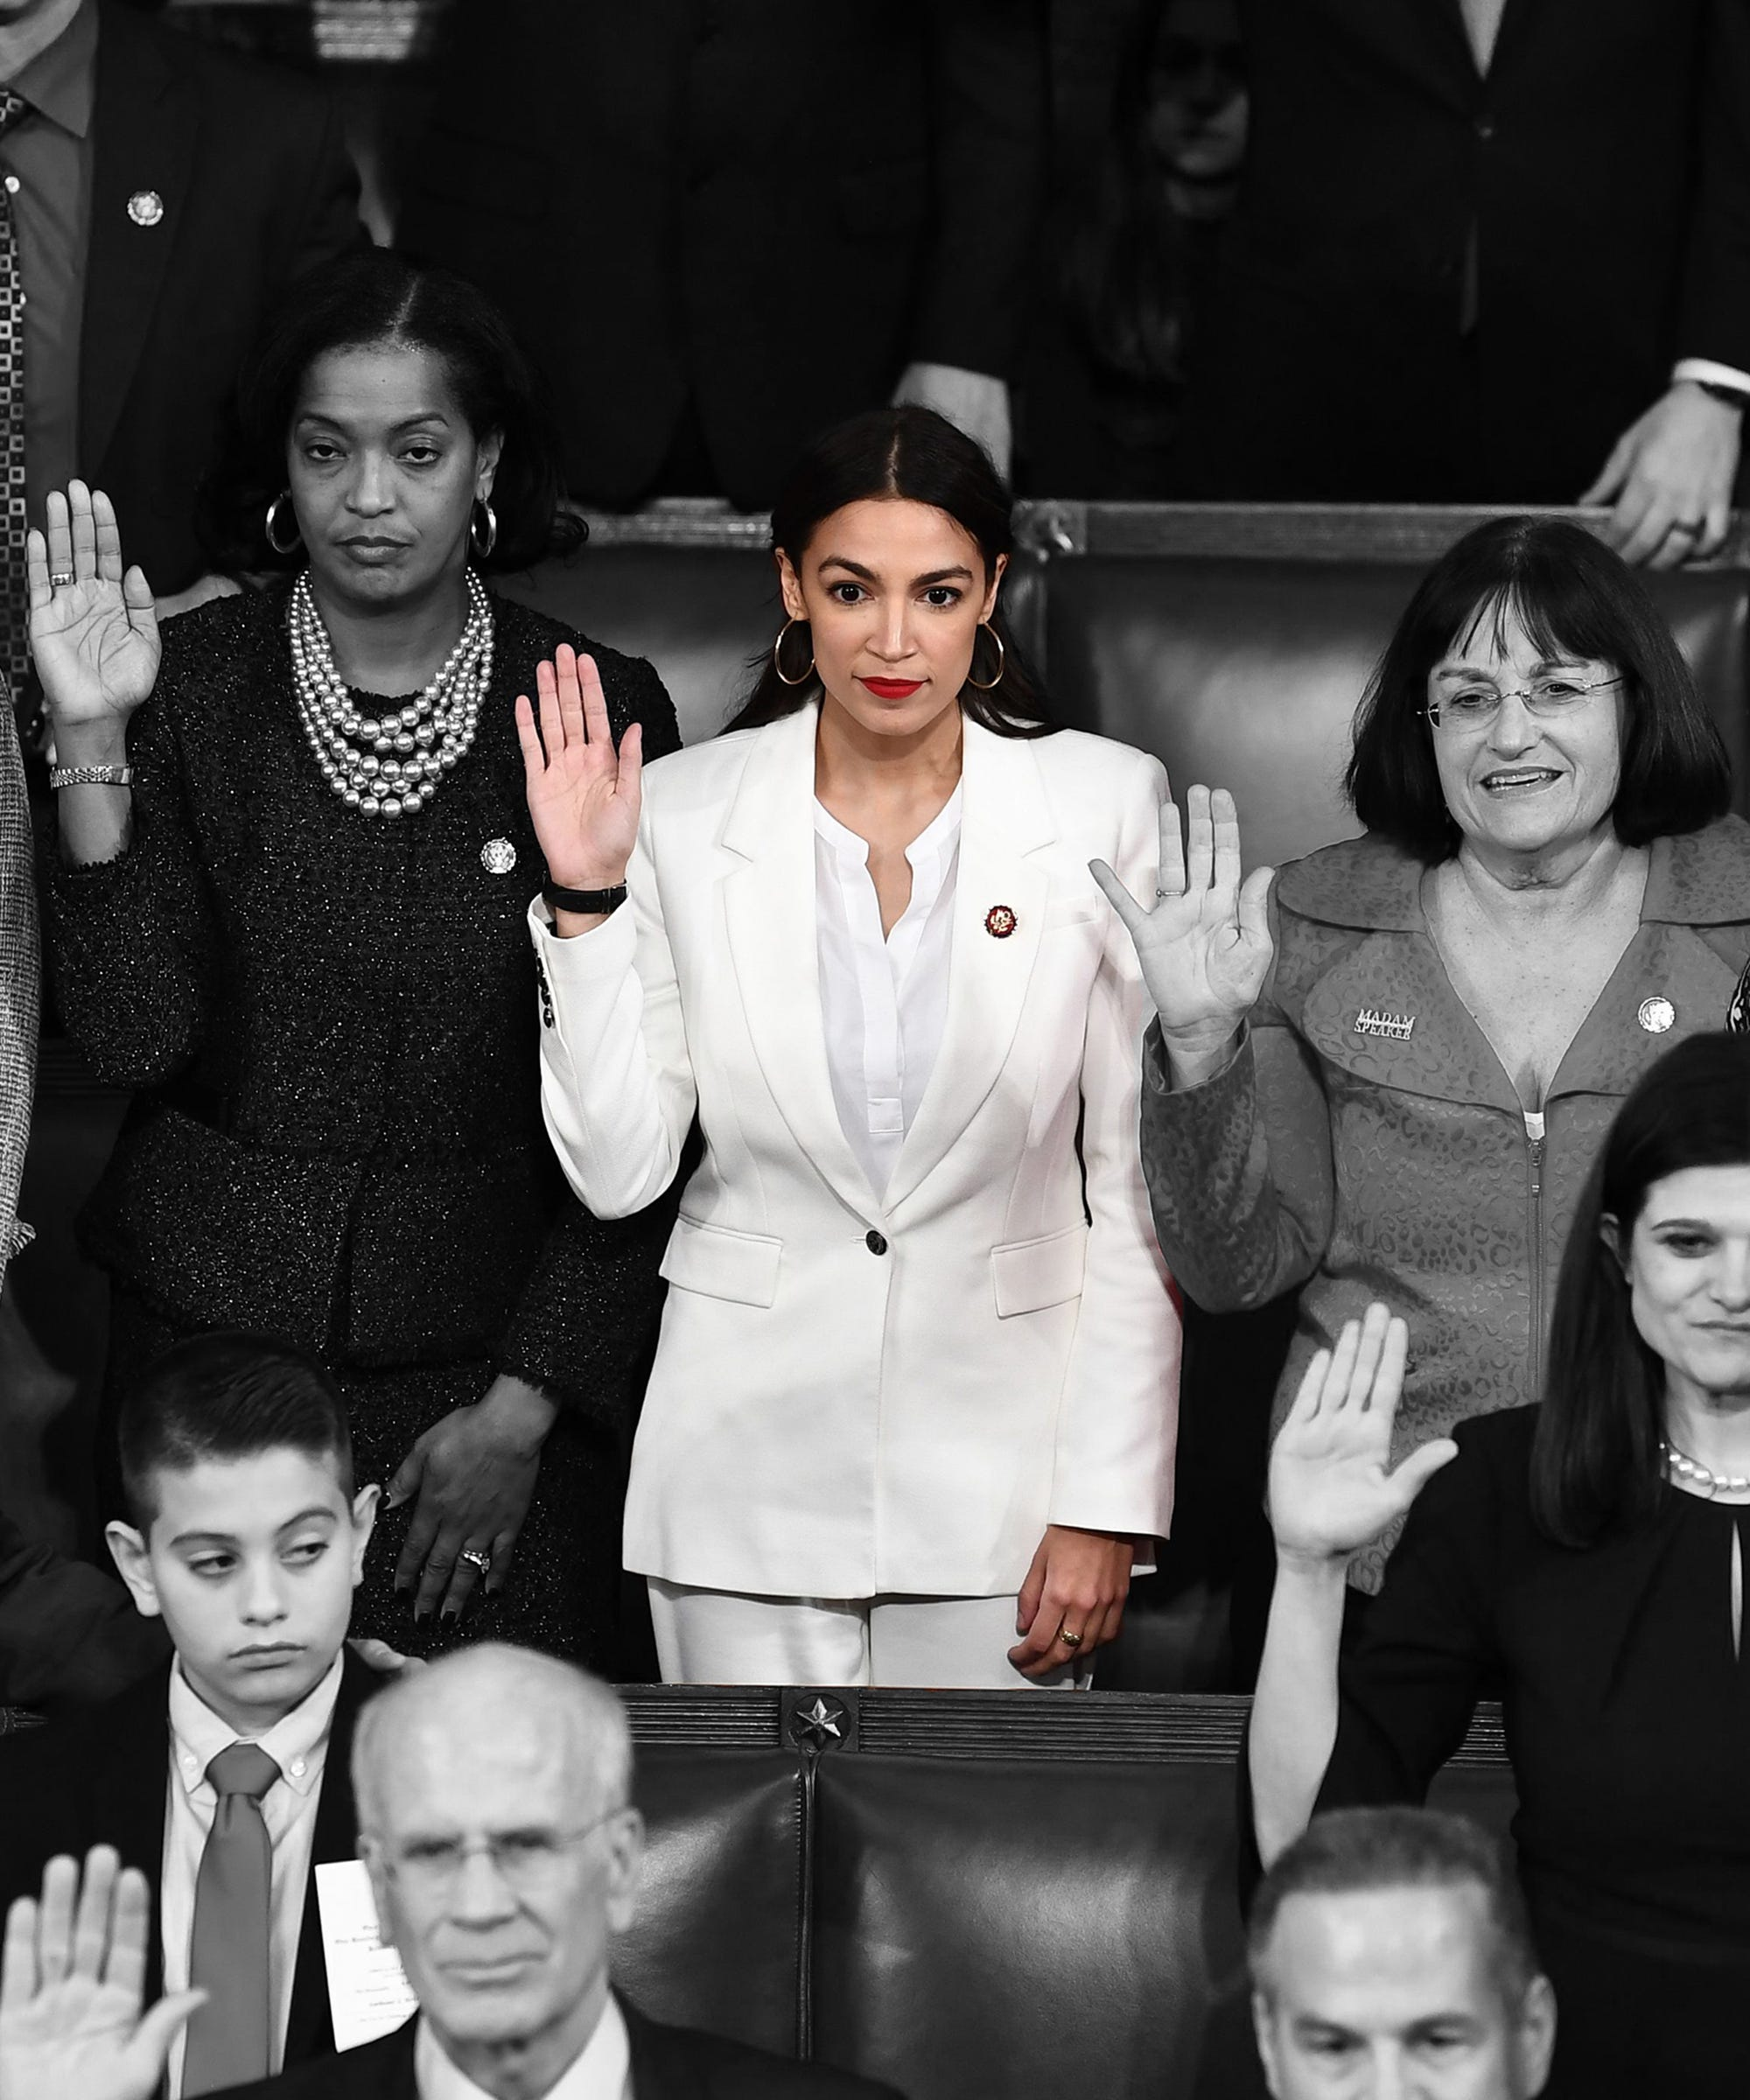 Is This Why Alexandria Ocasio-Cortez Wore All-White For Her Swearing In?